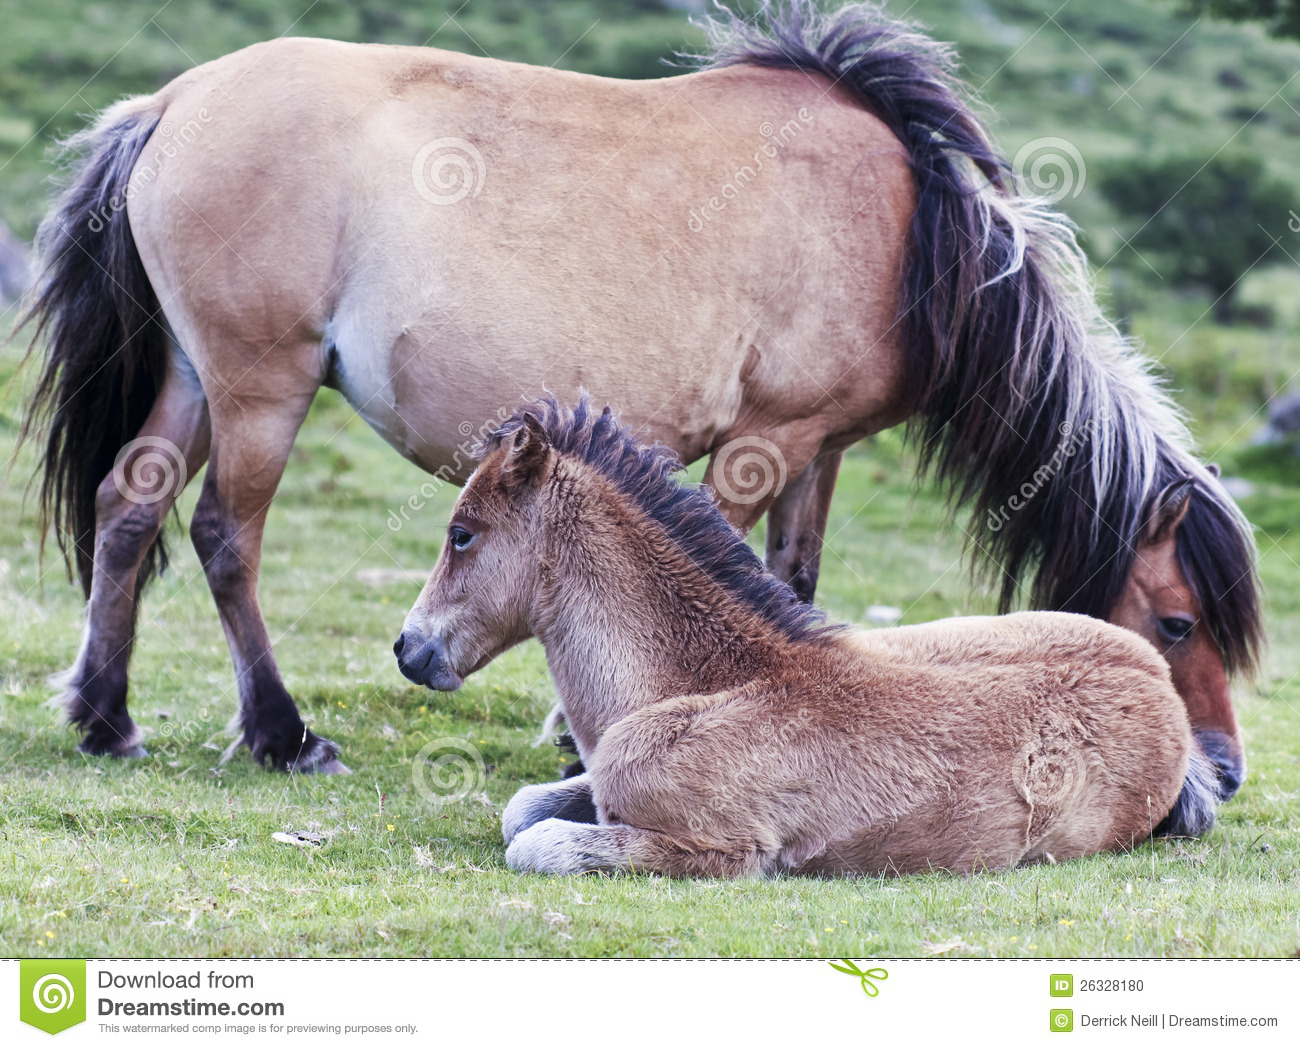 A Dartmoor Pony Mare And Foal, Devon, England Stock Photo.